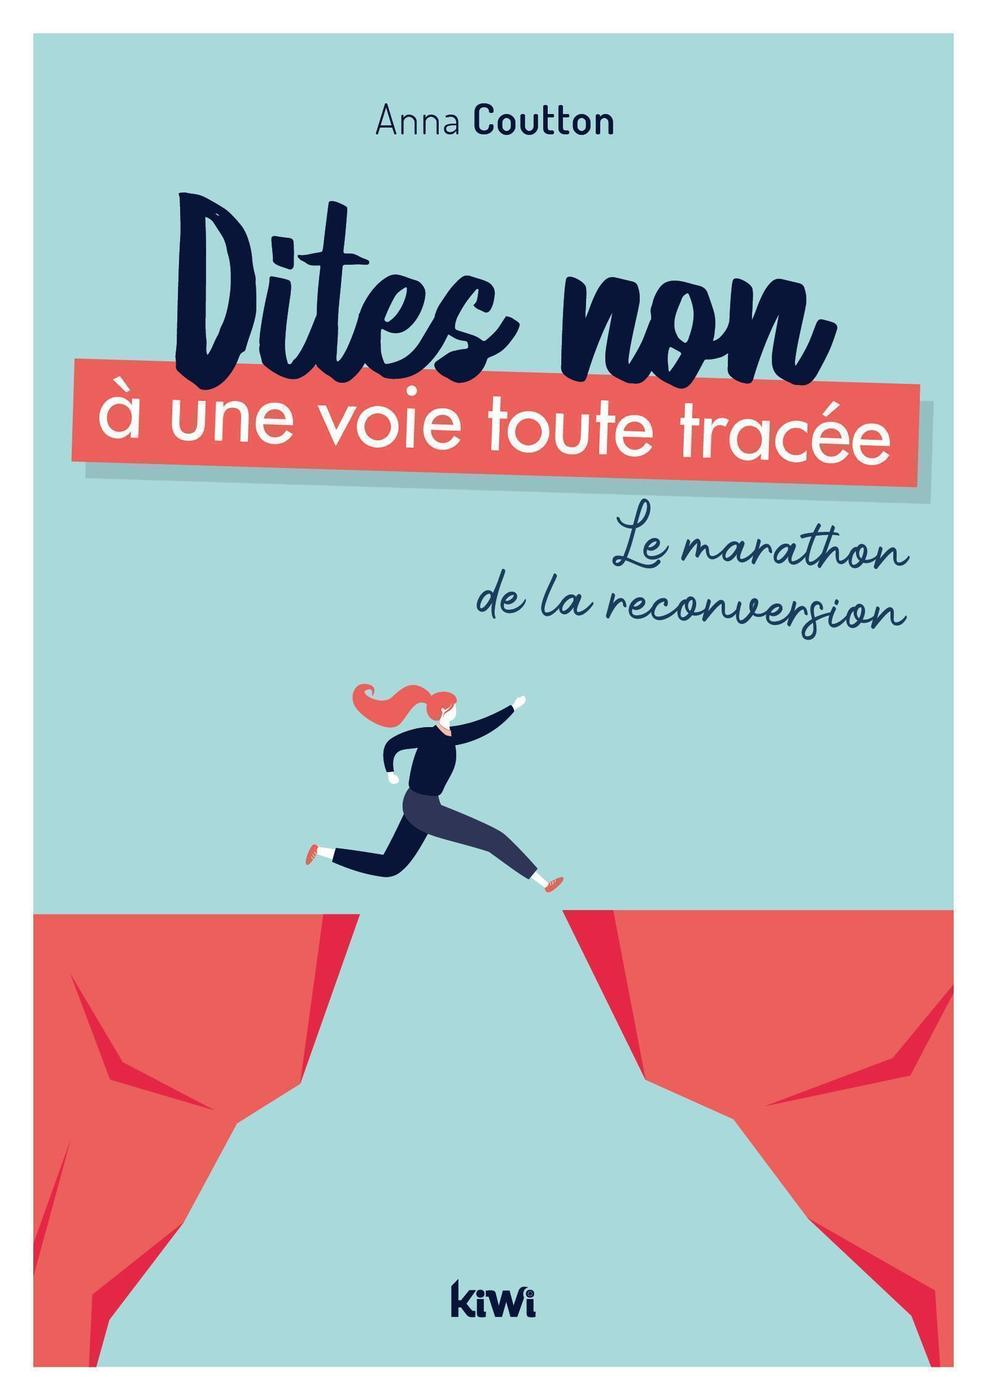 Dites Non A Une Voie Toute Tracee Anna Coutton Librairie Eyrolles